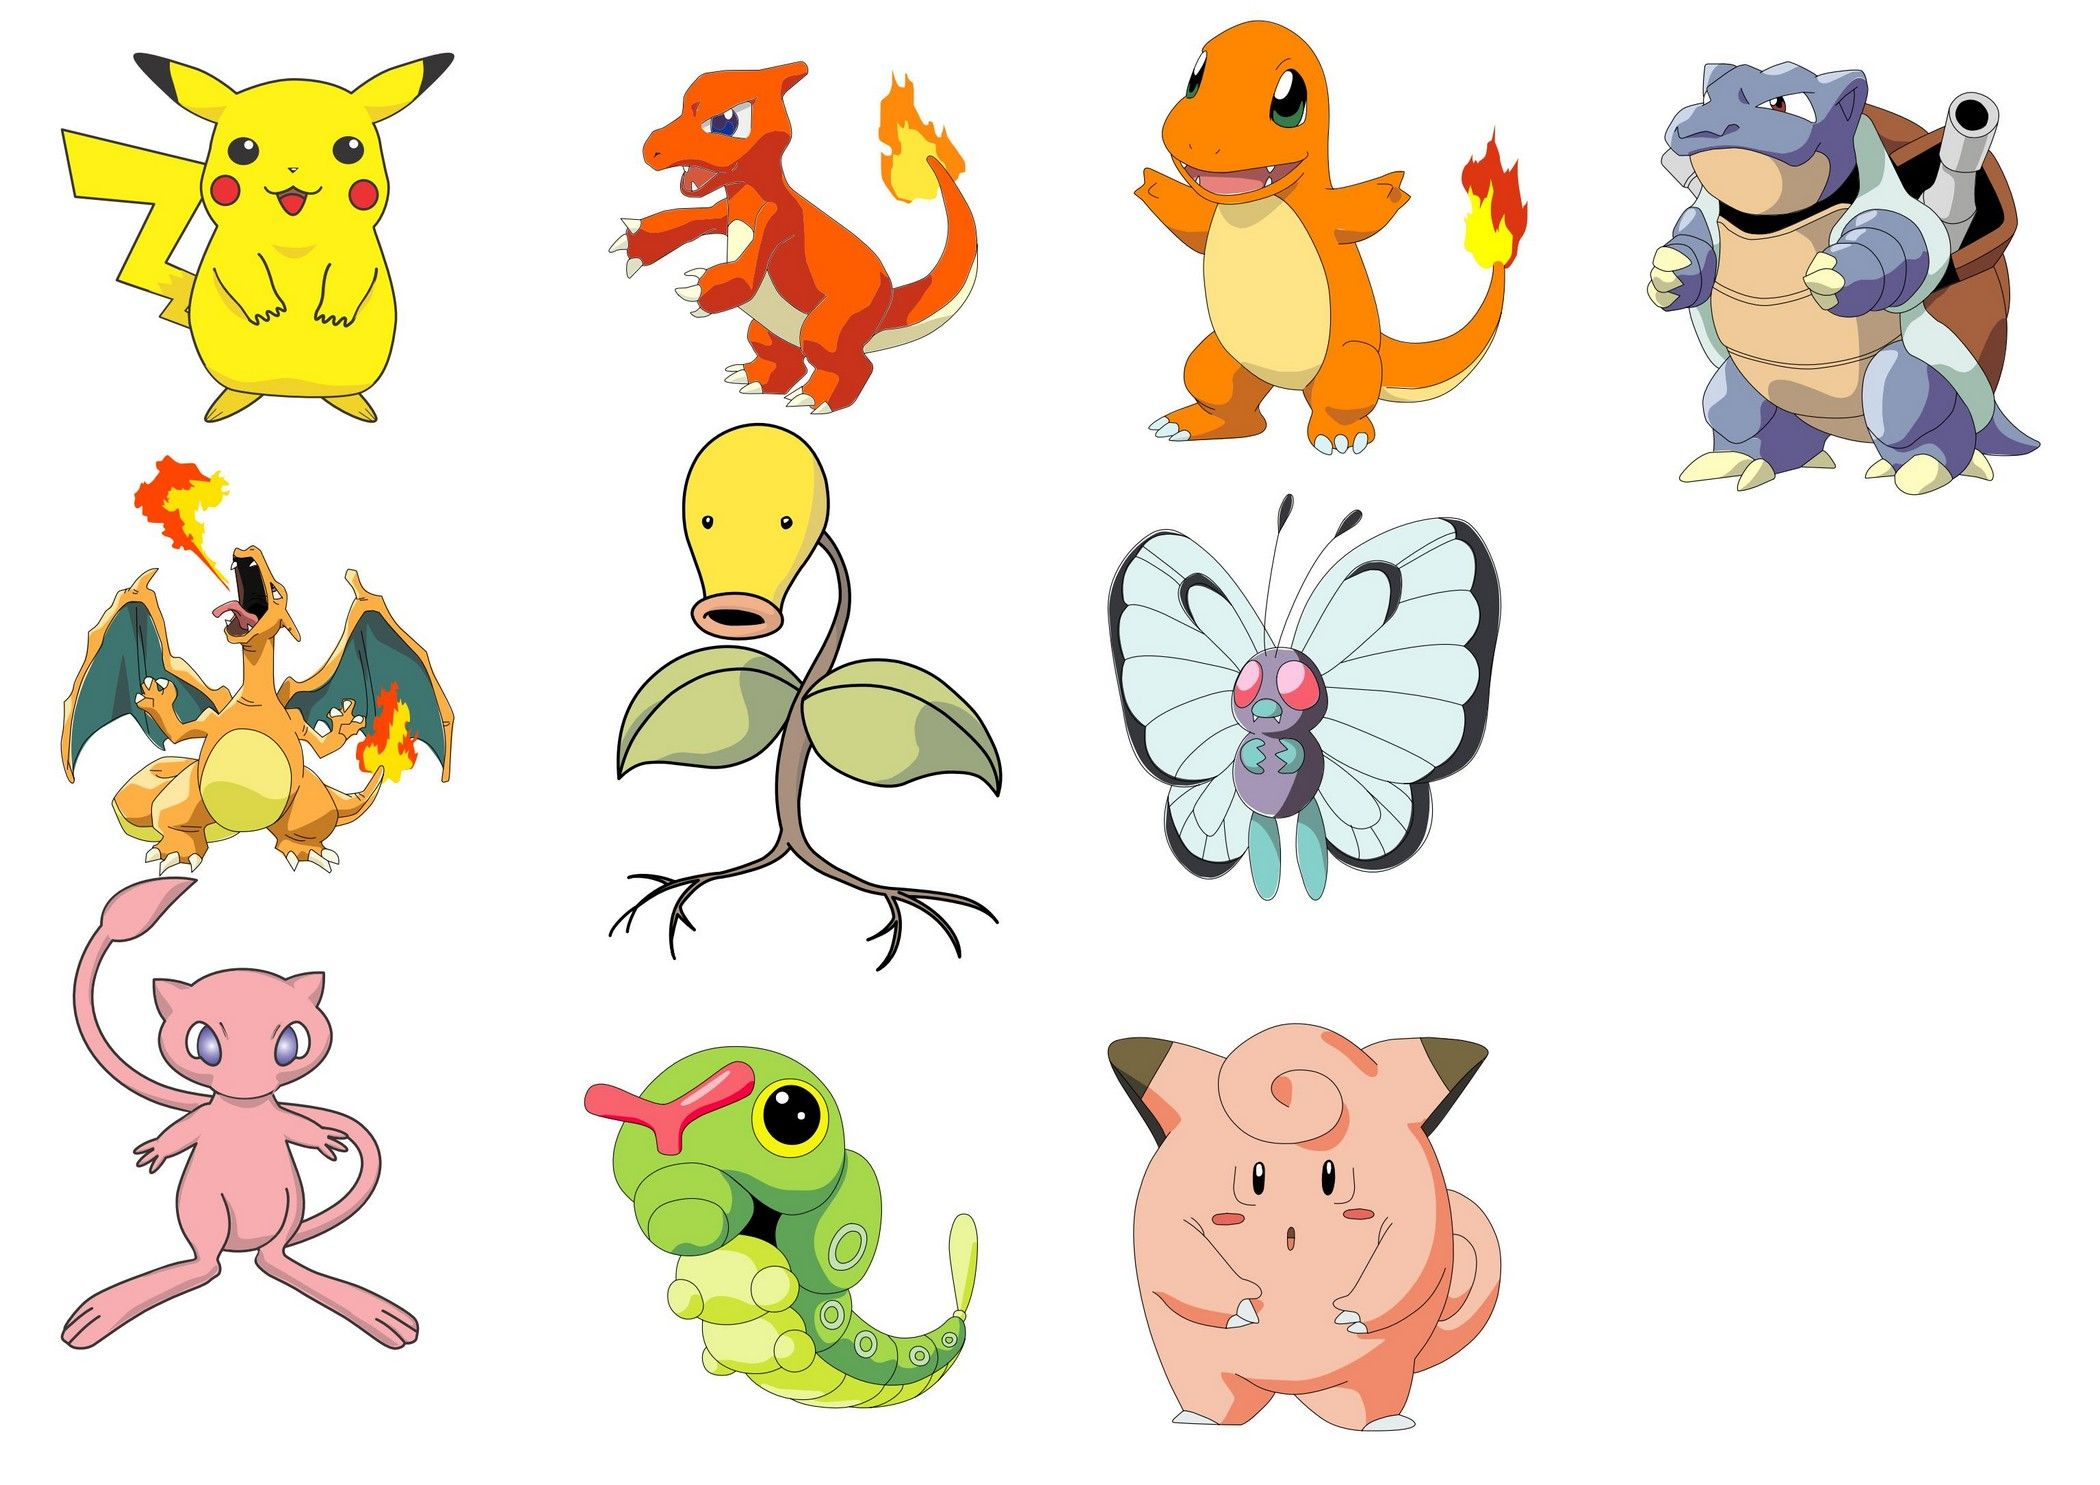 The Art Of Animal Character Design Pdf Free Download : Pokemon characters vector eps file free